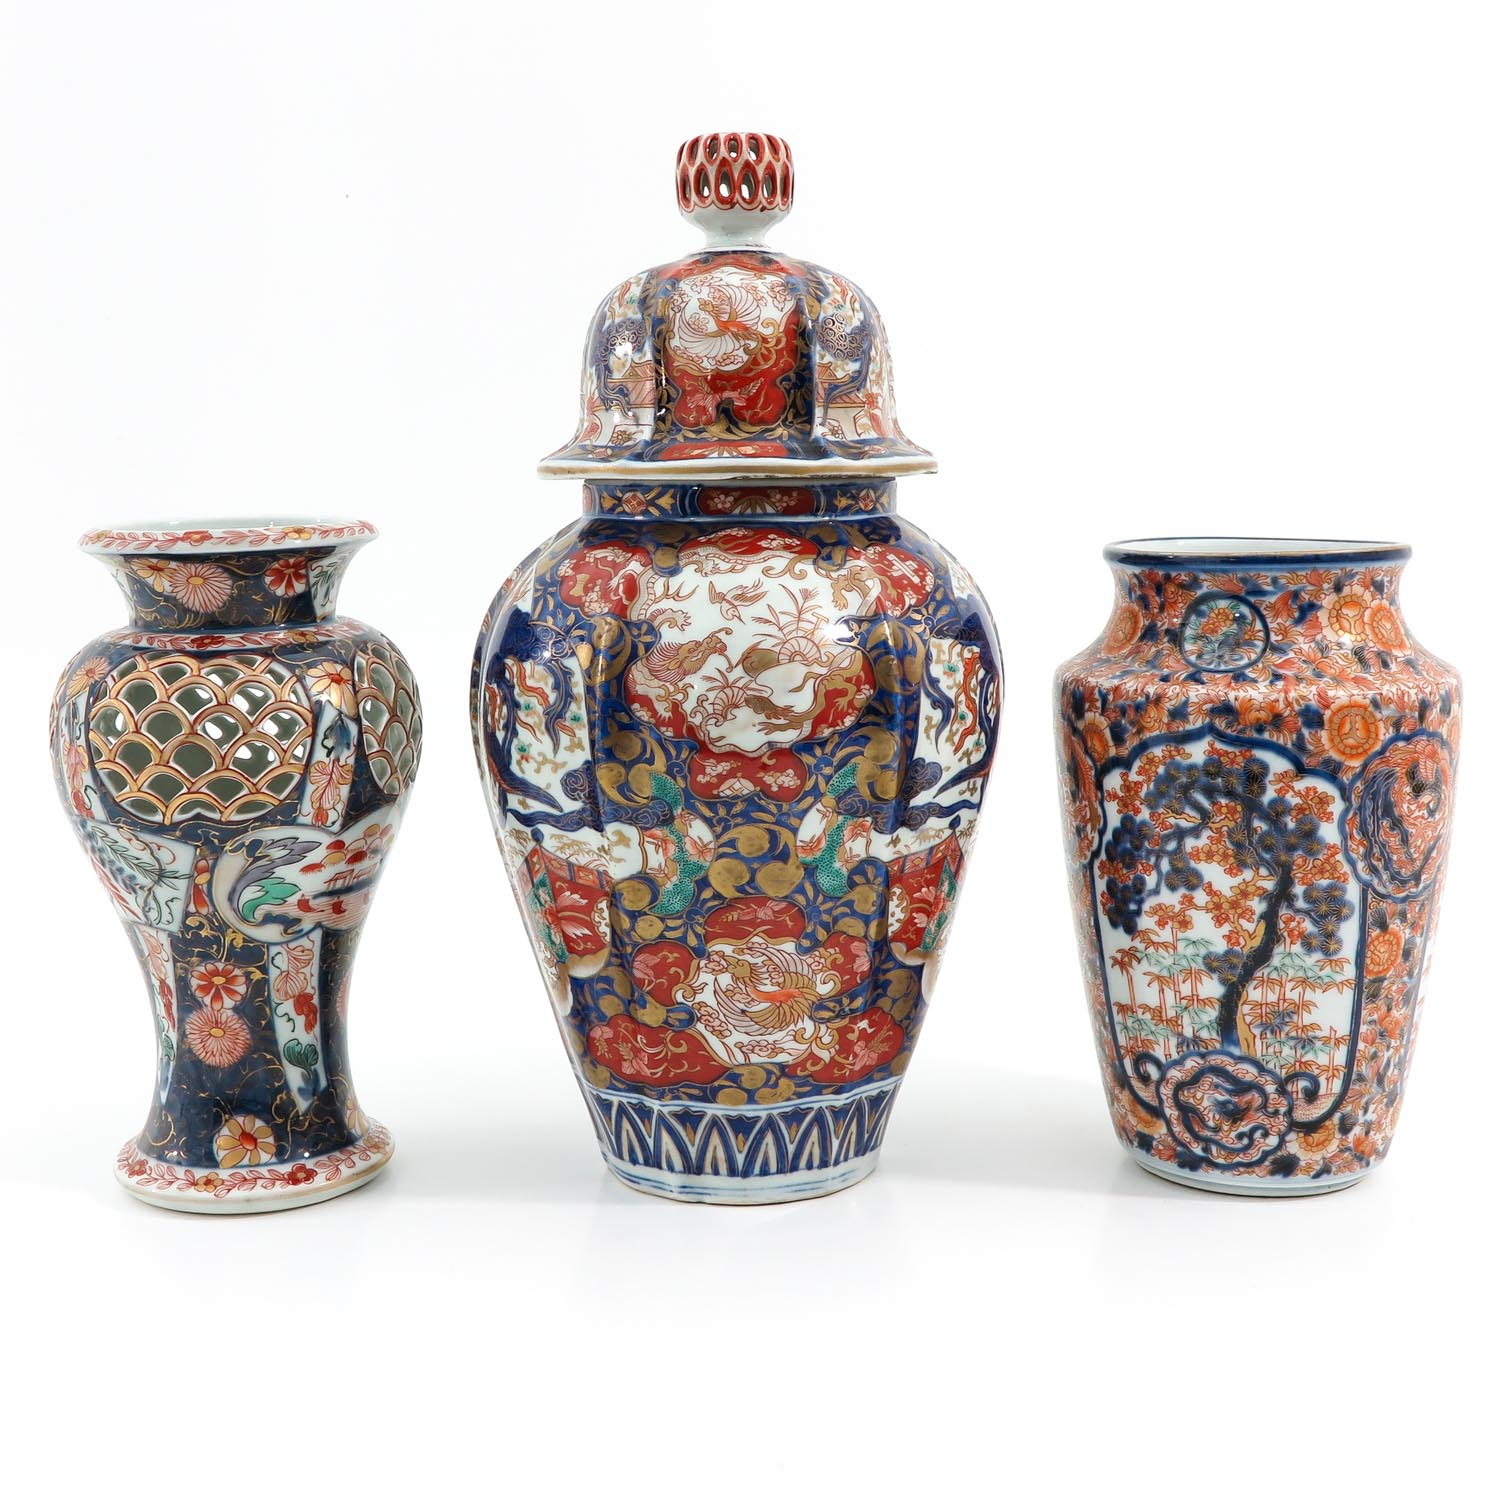 A Collection of 3 Imari Vases - Image 4 of 9